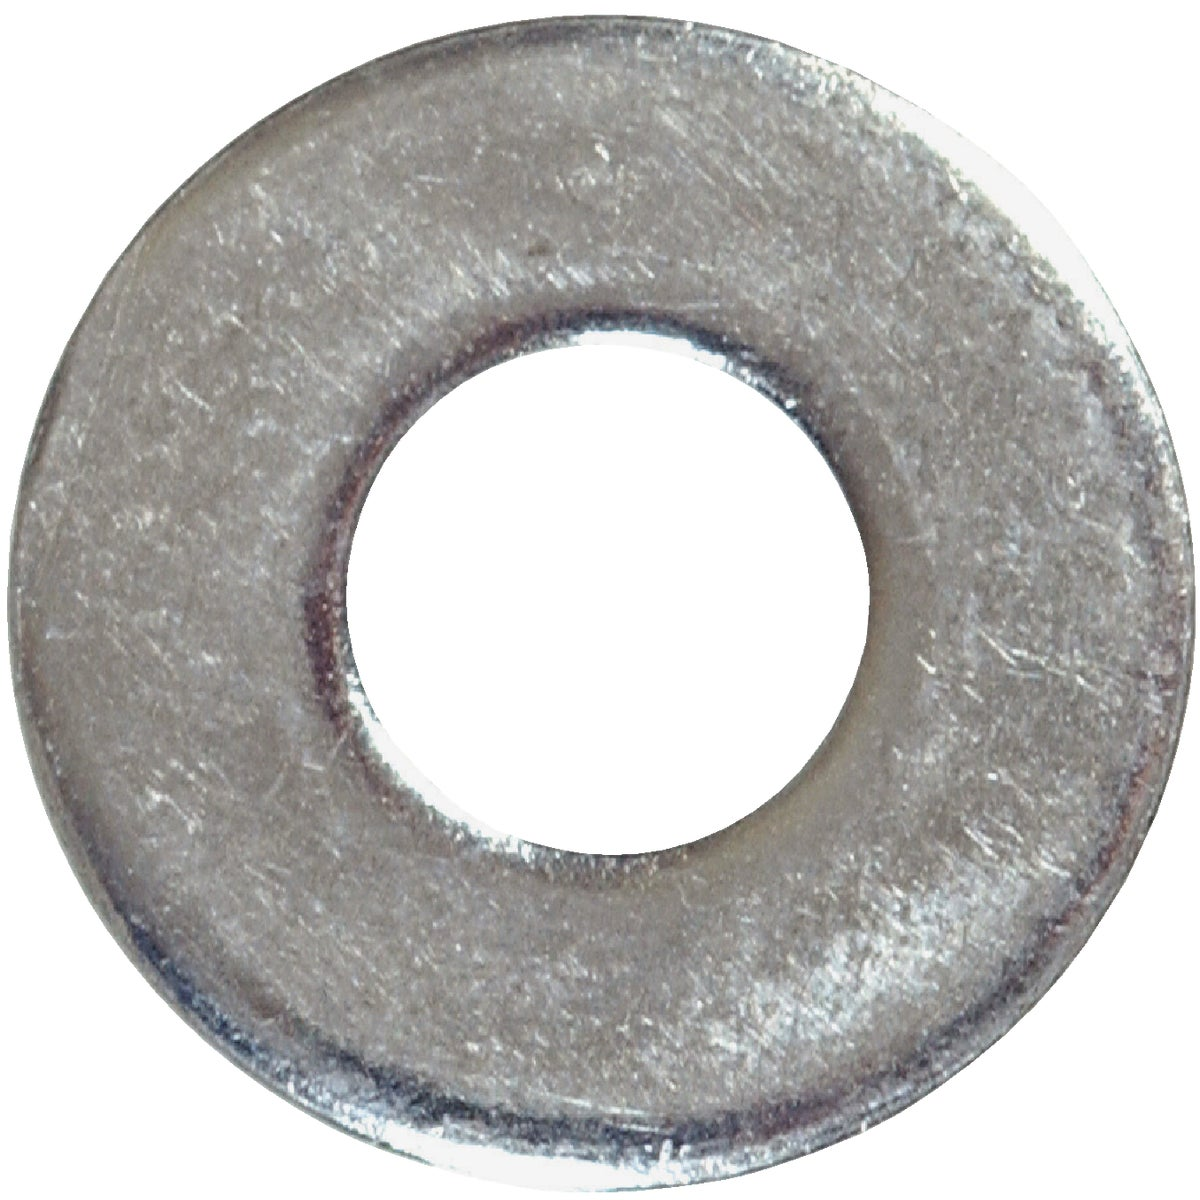 "25PC 5/8"" USS FLT WASHER - 270070 by Hillman Fastener"